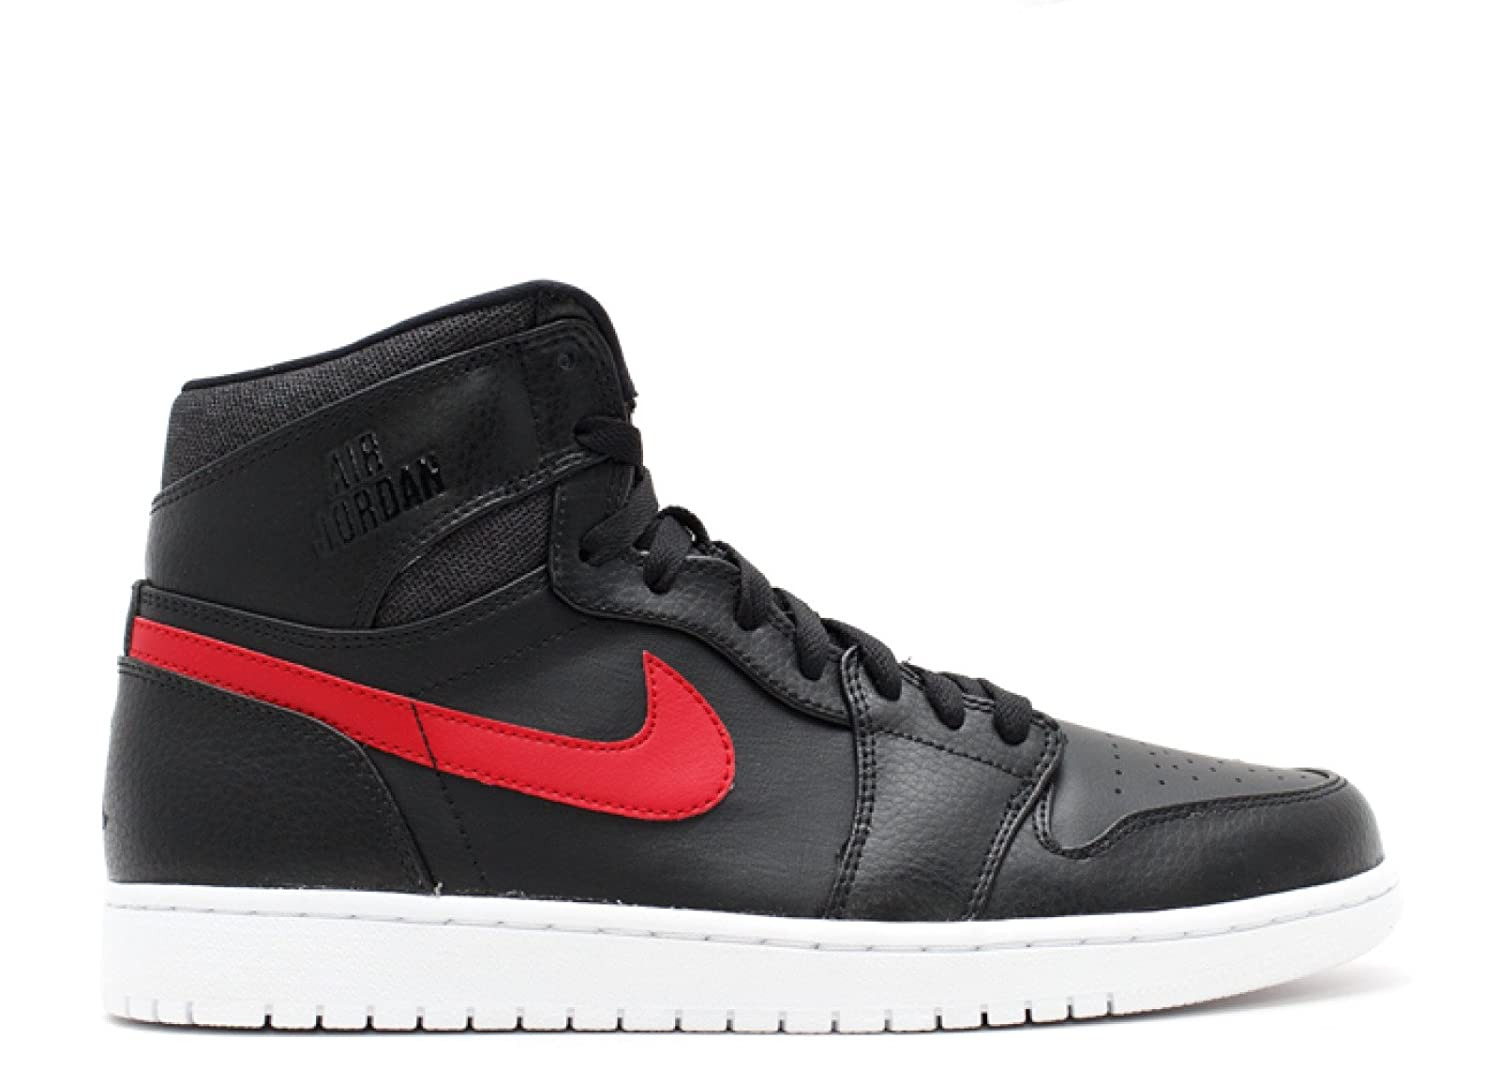 finest selection 55bbc 8abc4 Nike Men s Air Jordan 1 Retro High Black White Red 332550-012  Amazon.ca   Shoes   Handbags